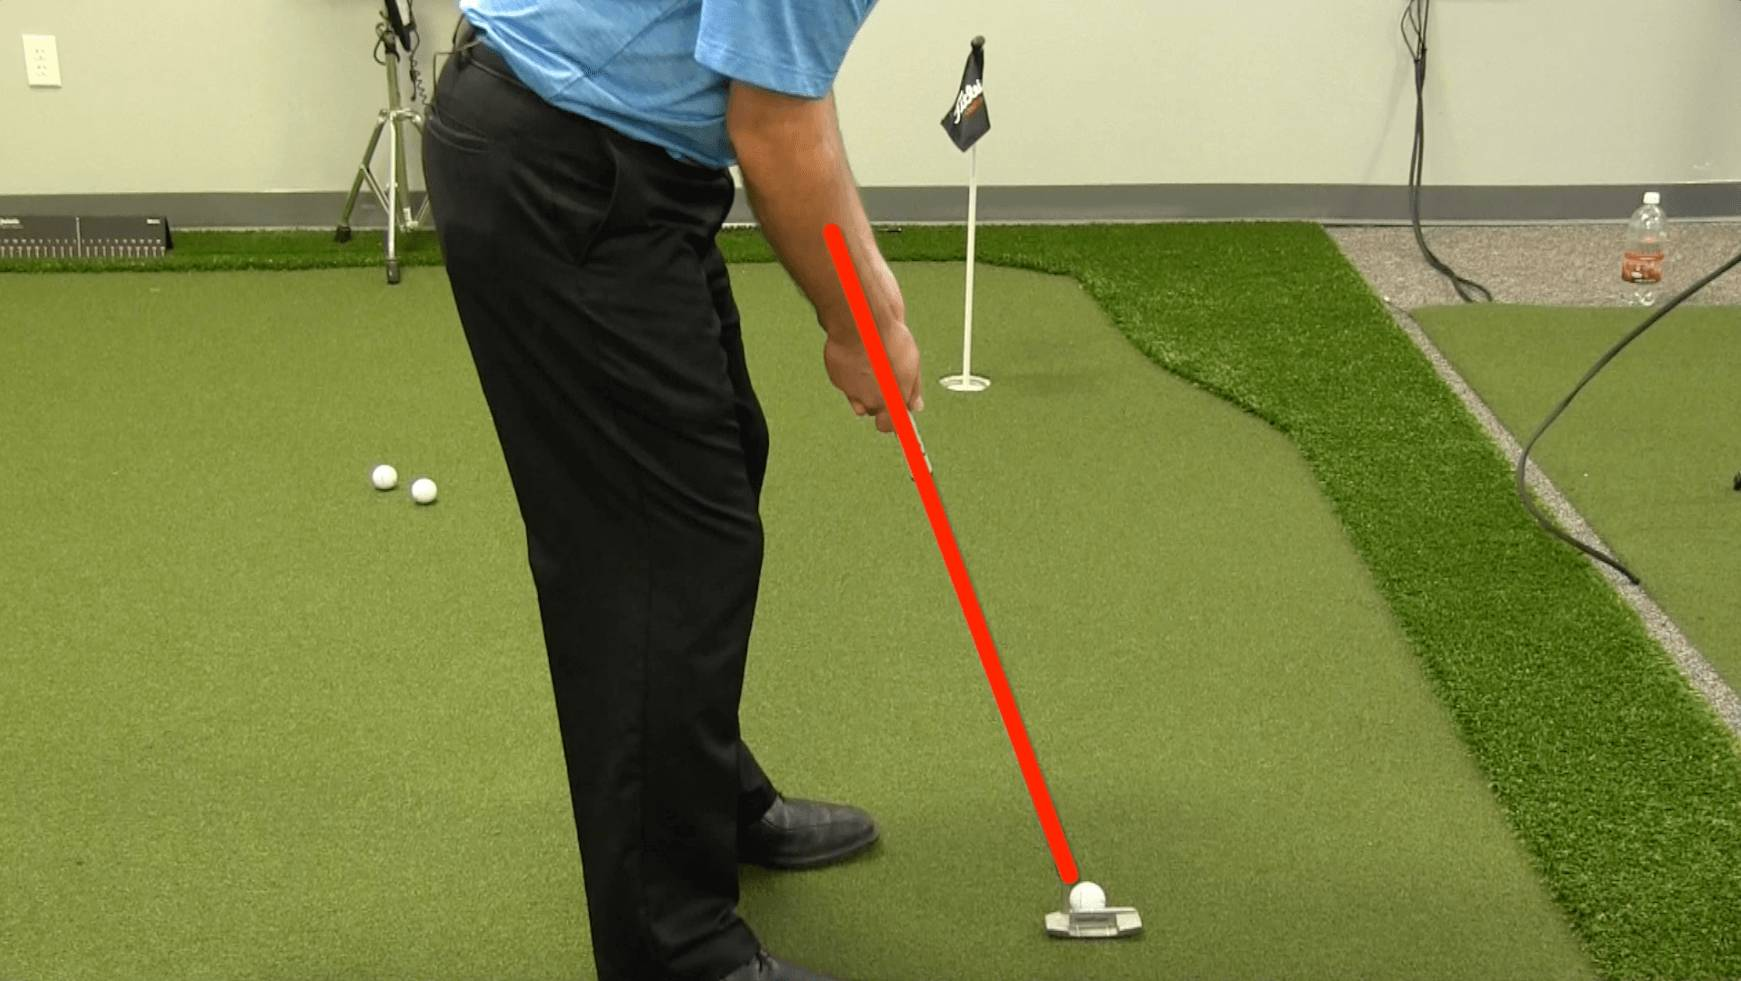 Having the putter in line with the forearms can really improve your putting setup